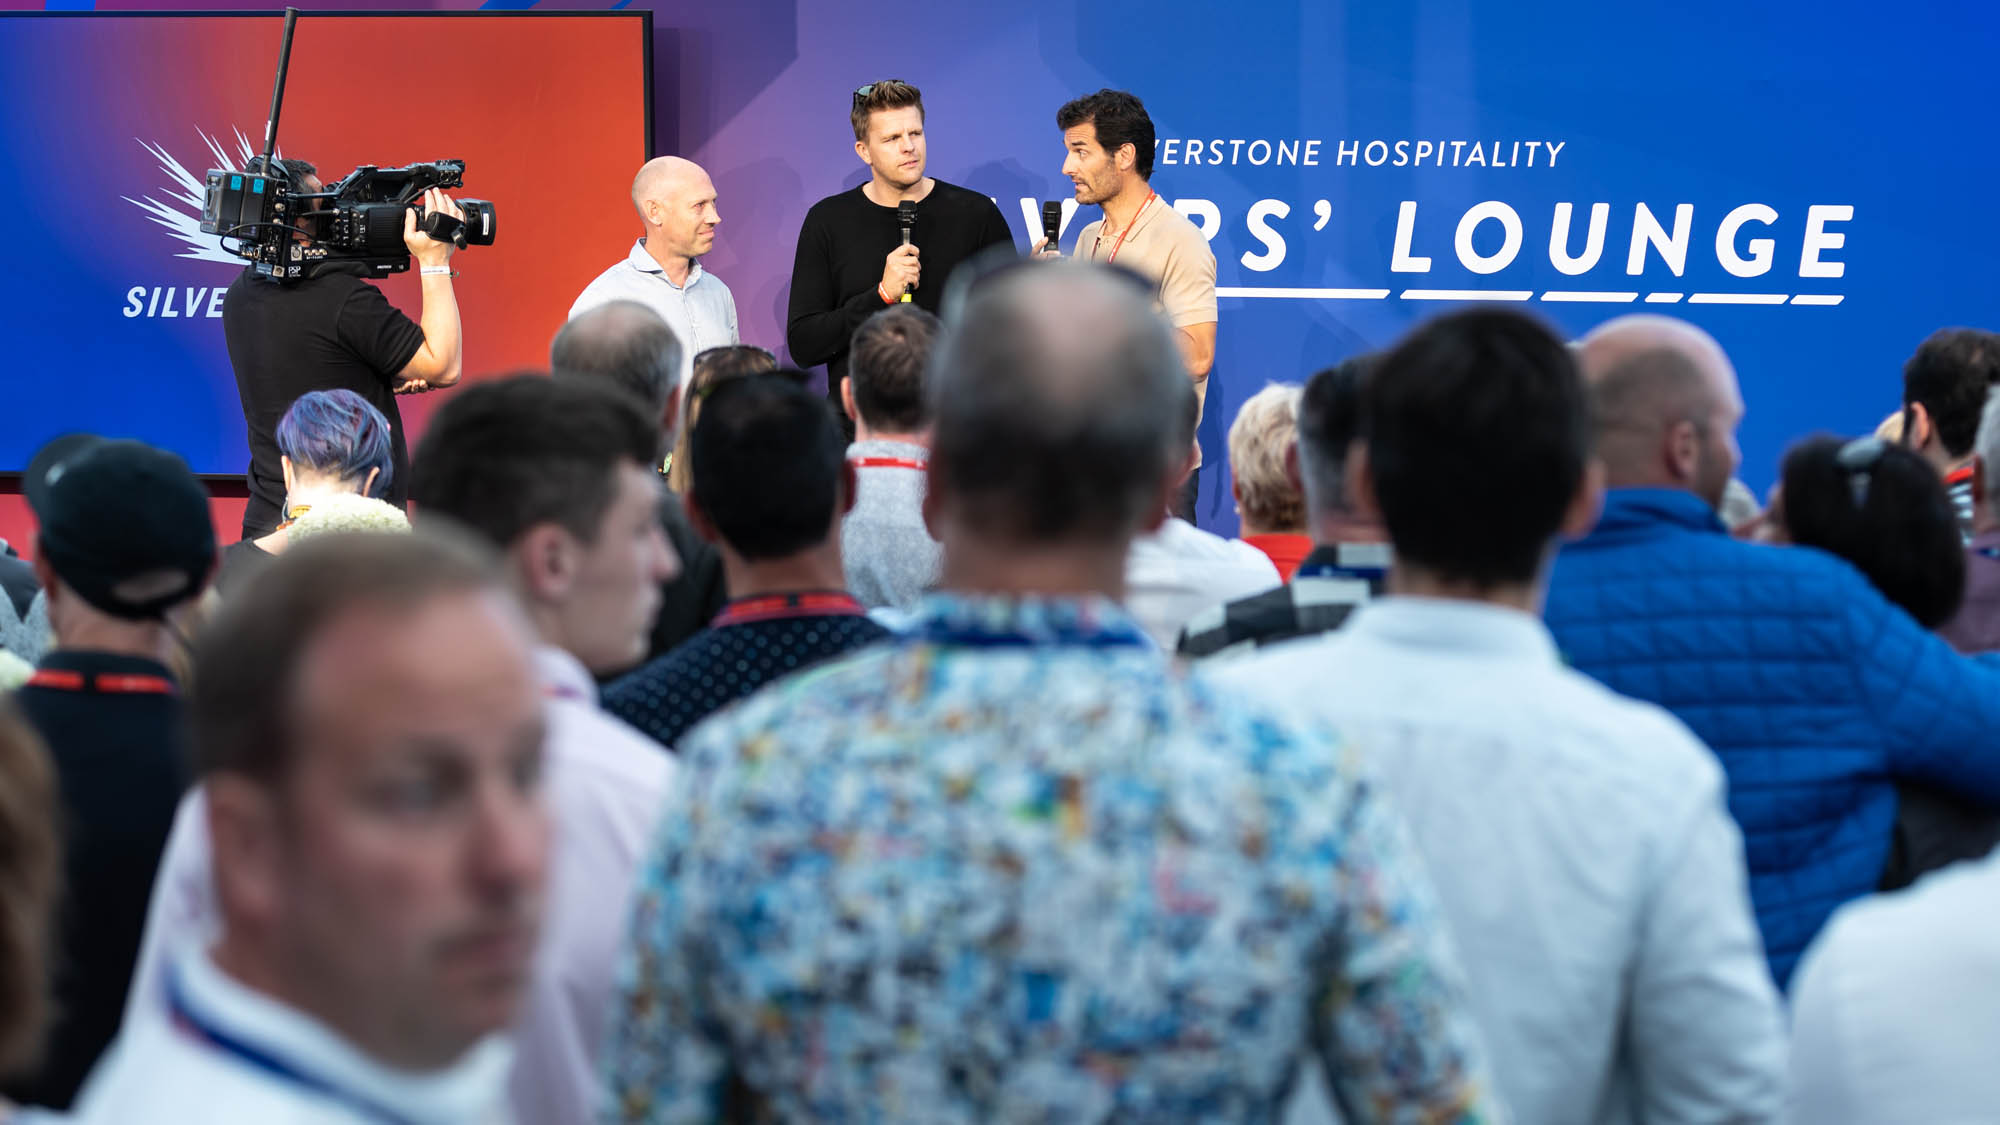 190720_Silverstone_2019_04_Drivers Lounge_Interviews-5.jpg